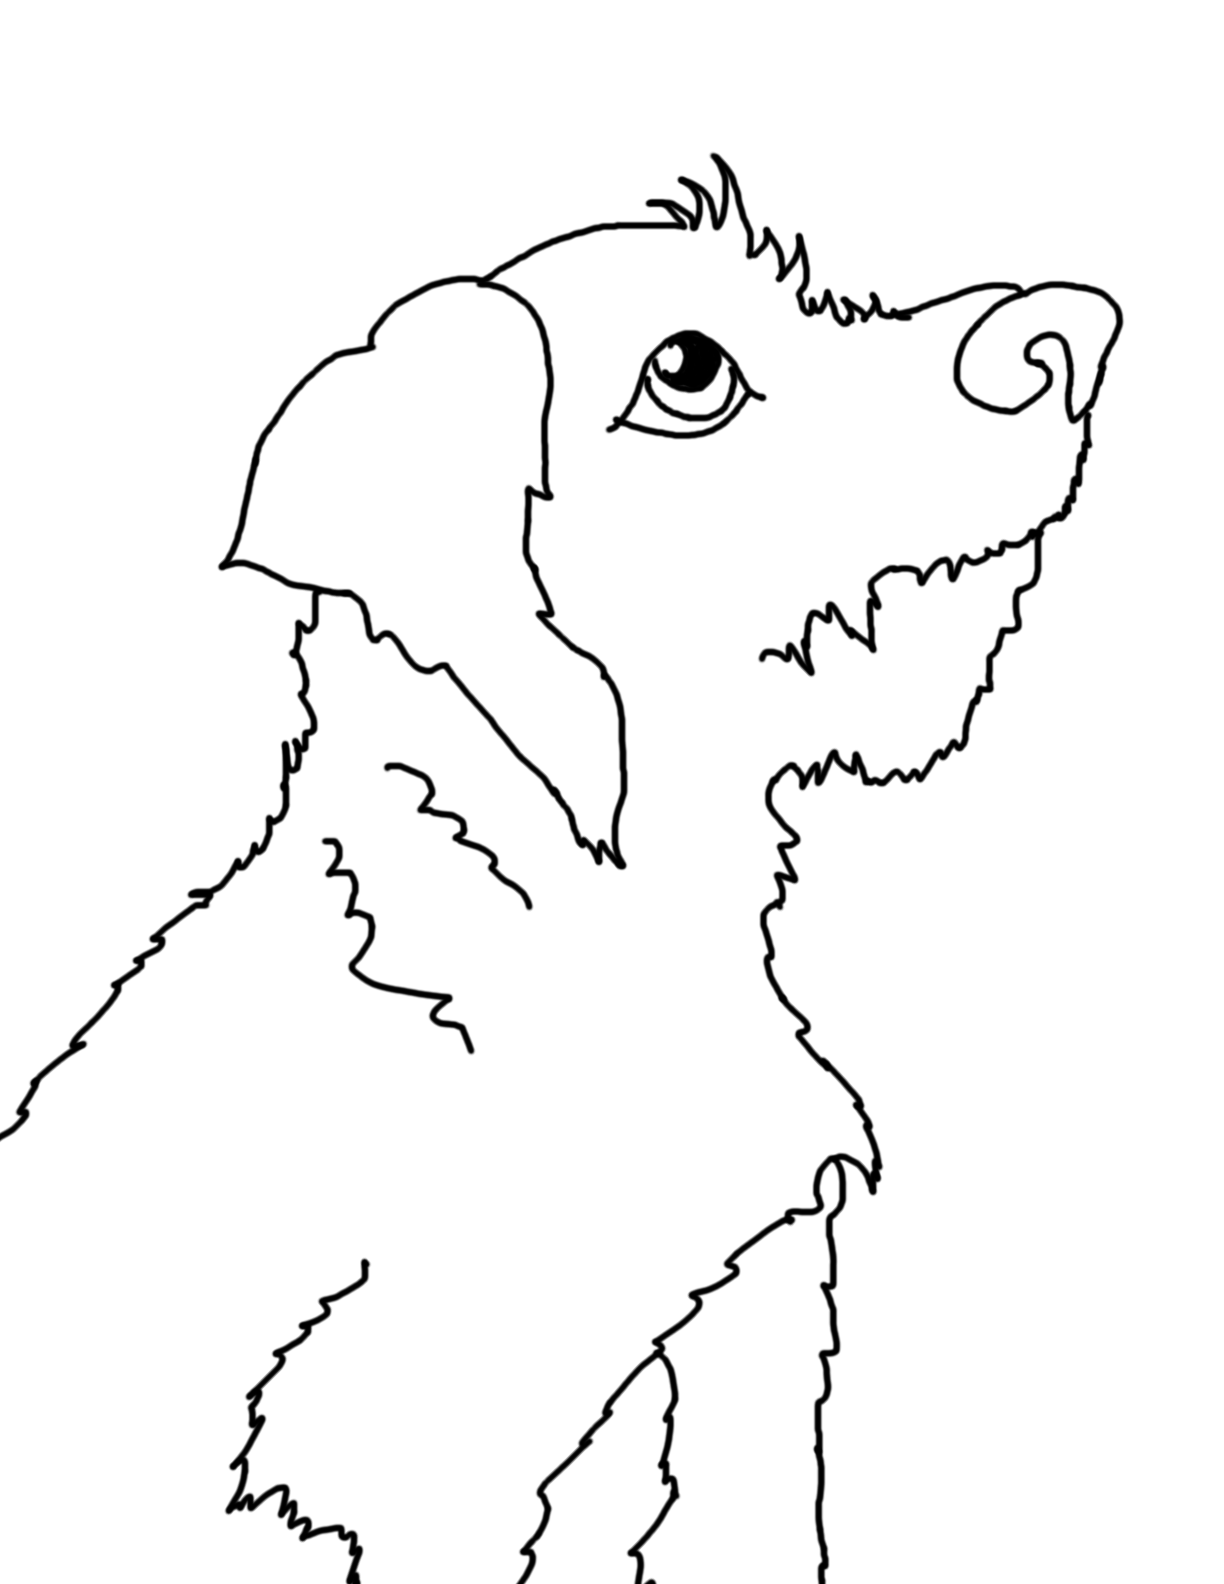 Wrigley coloring page. Print me & go wild with colors!